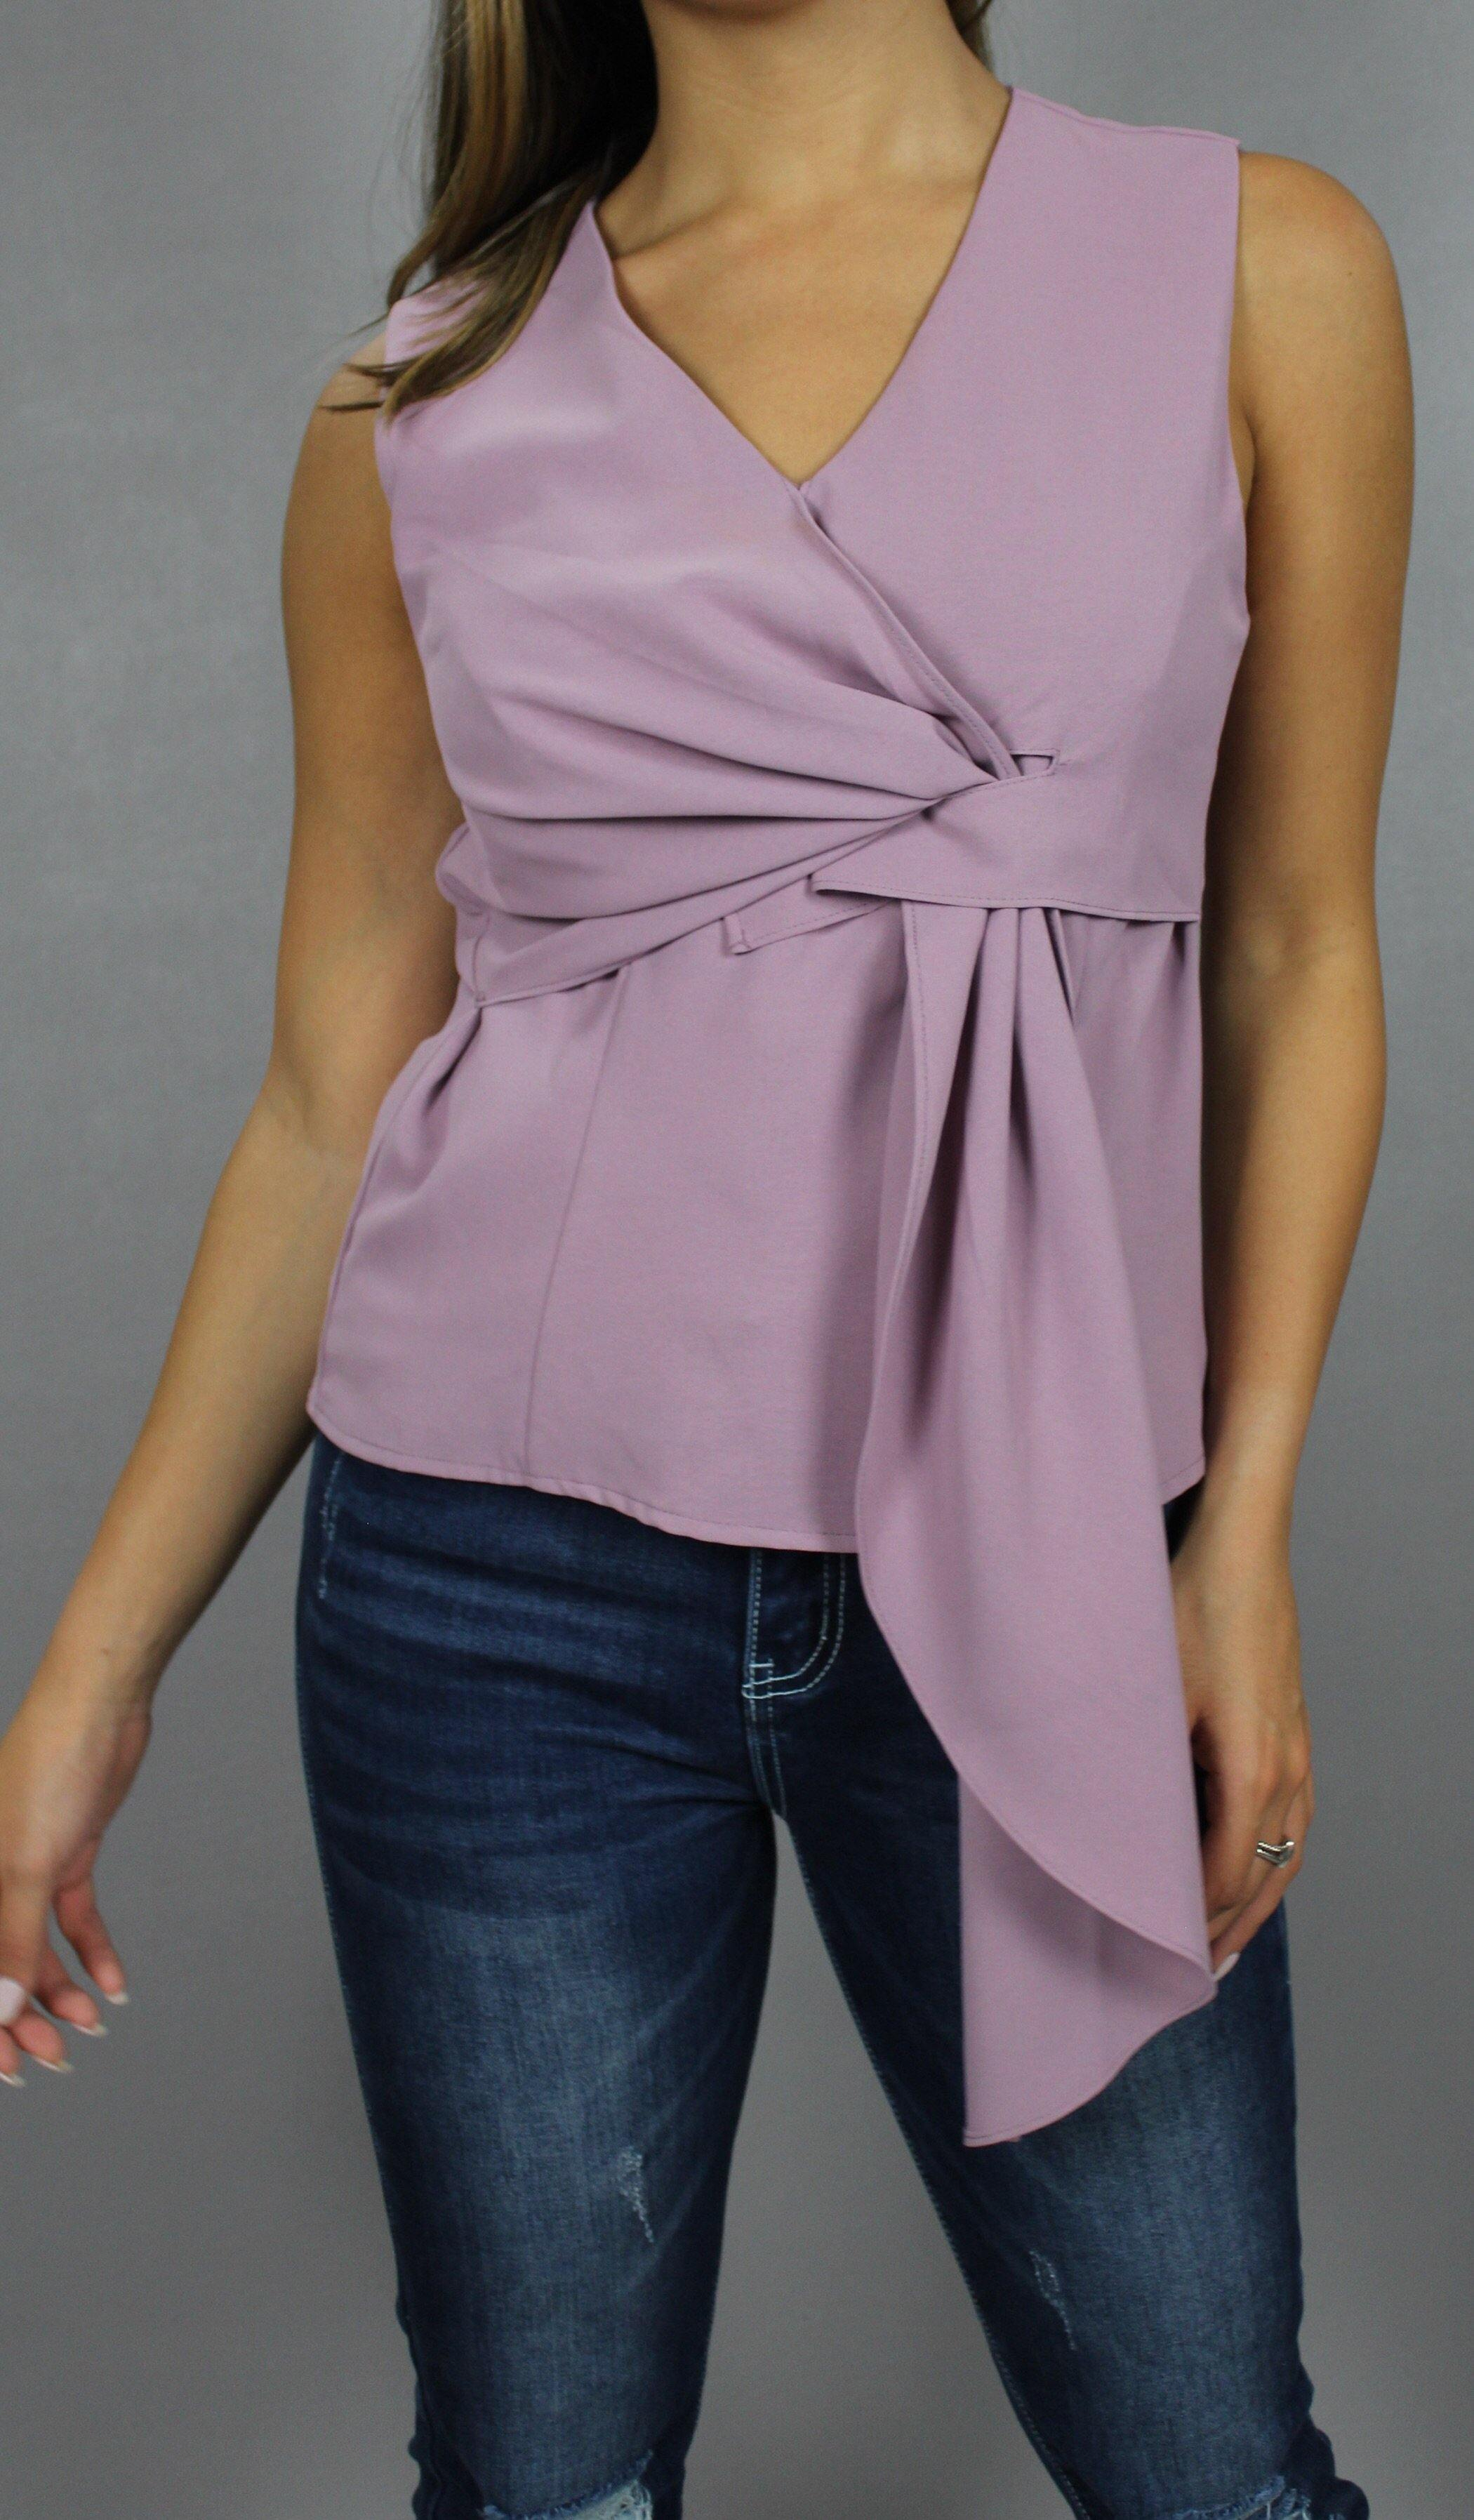 MELODY SLEEVELESS TOP - elbie boutique, LLC